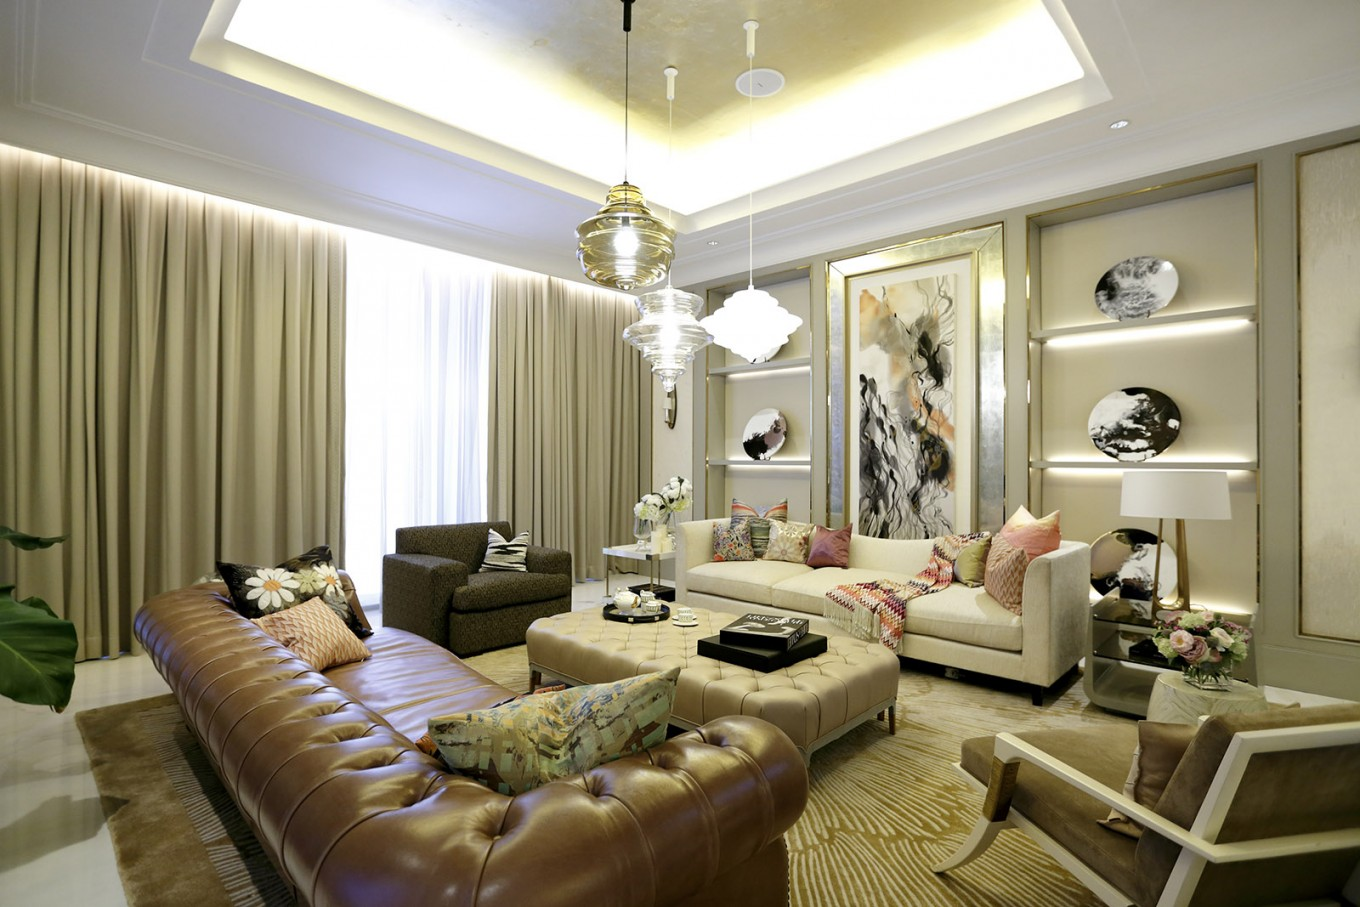 Upcoming luxury apartment in Jakarta receives accolades from PropertyGuru